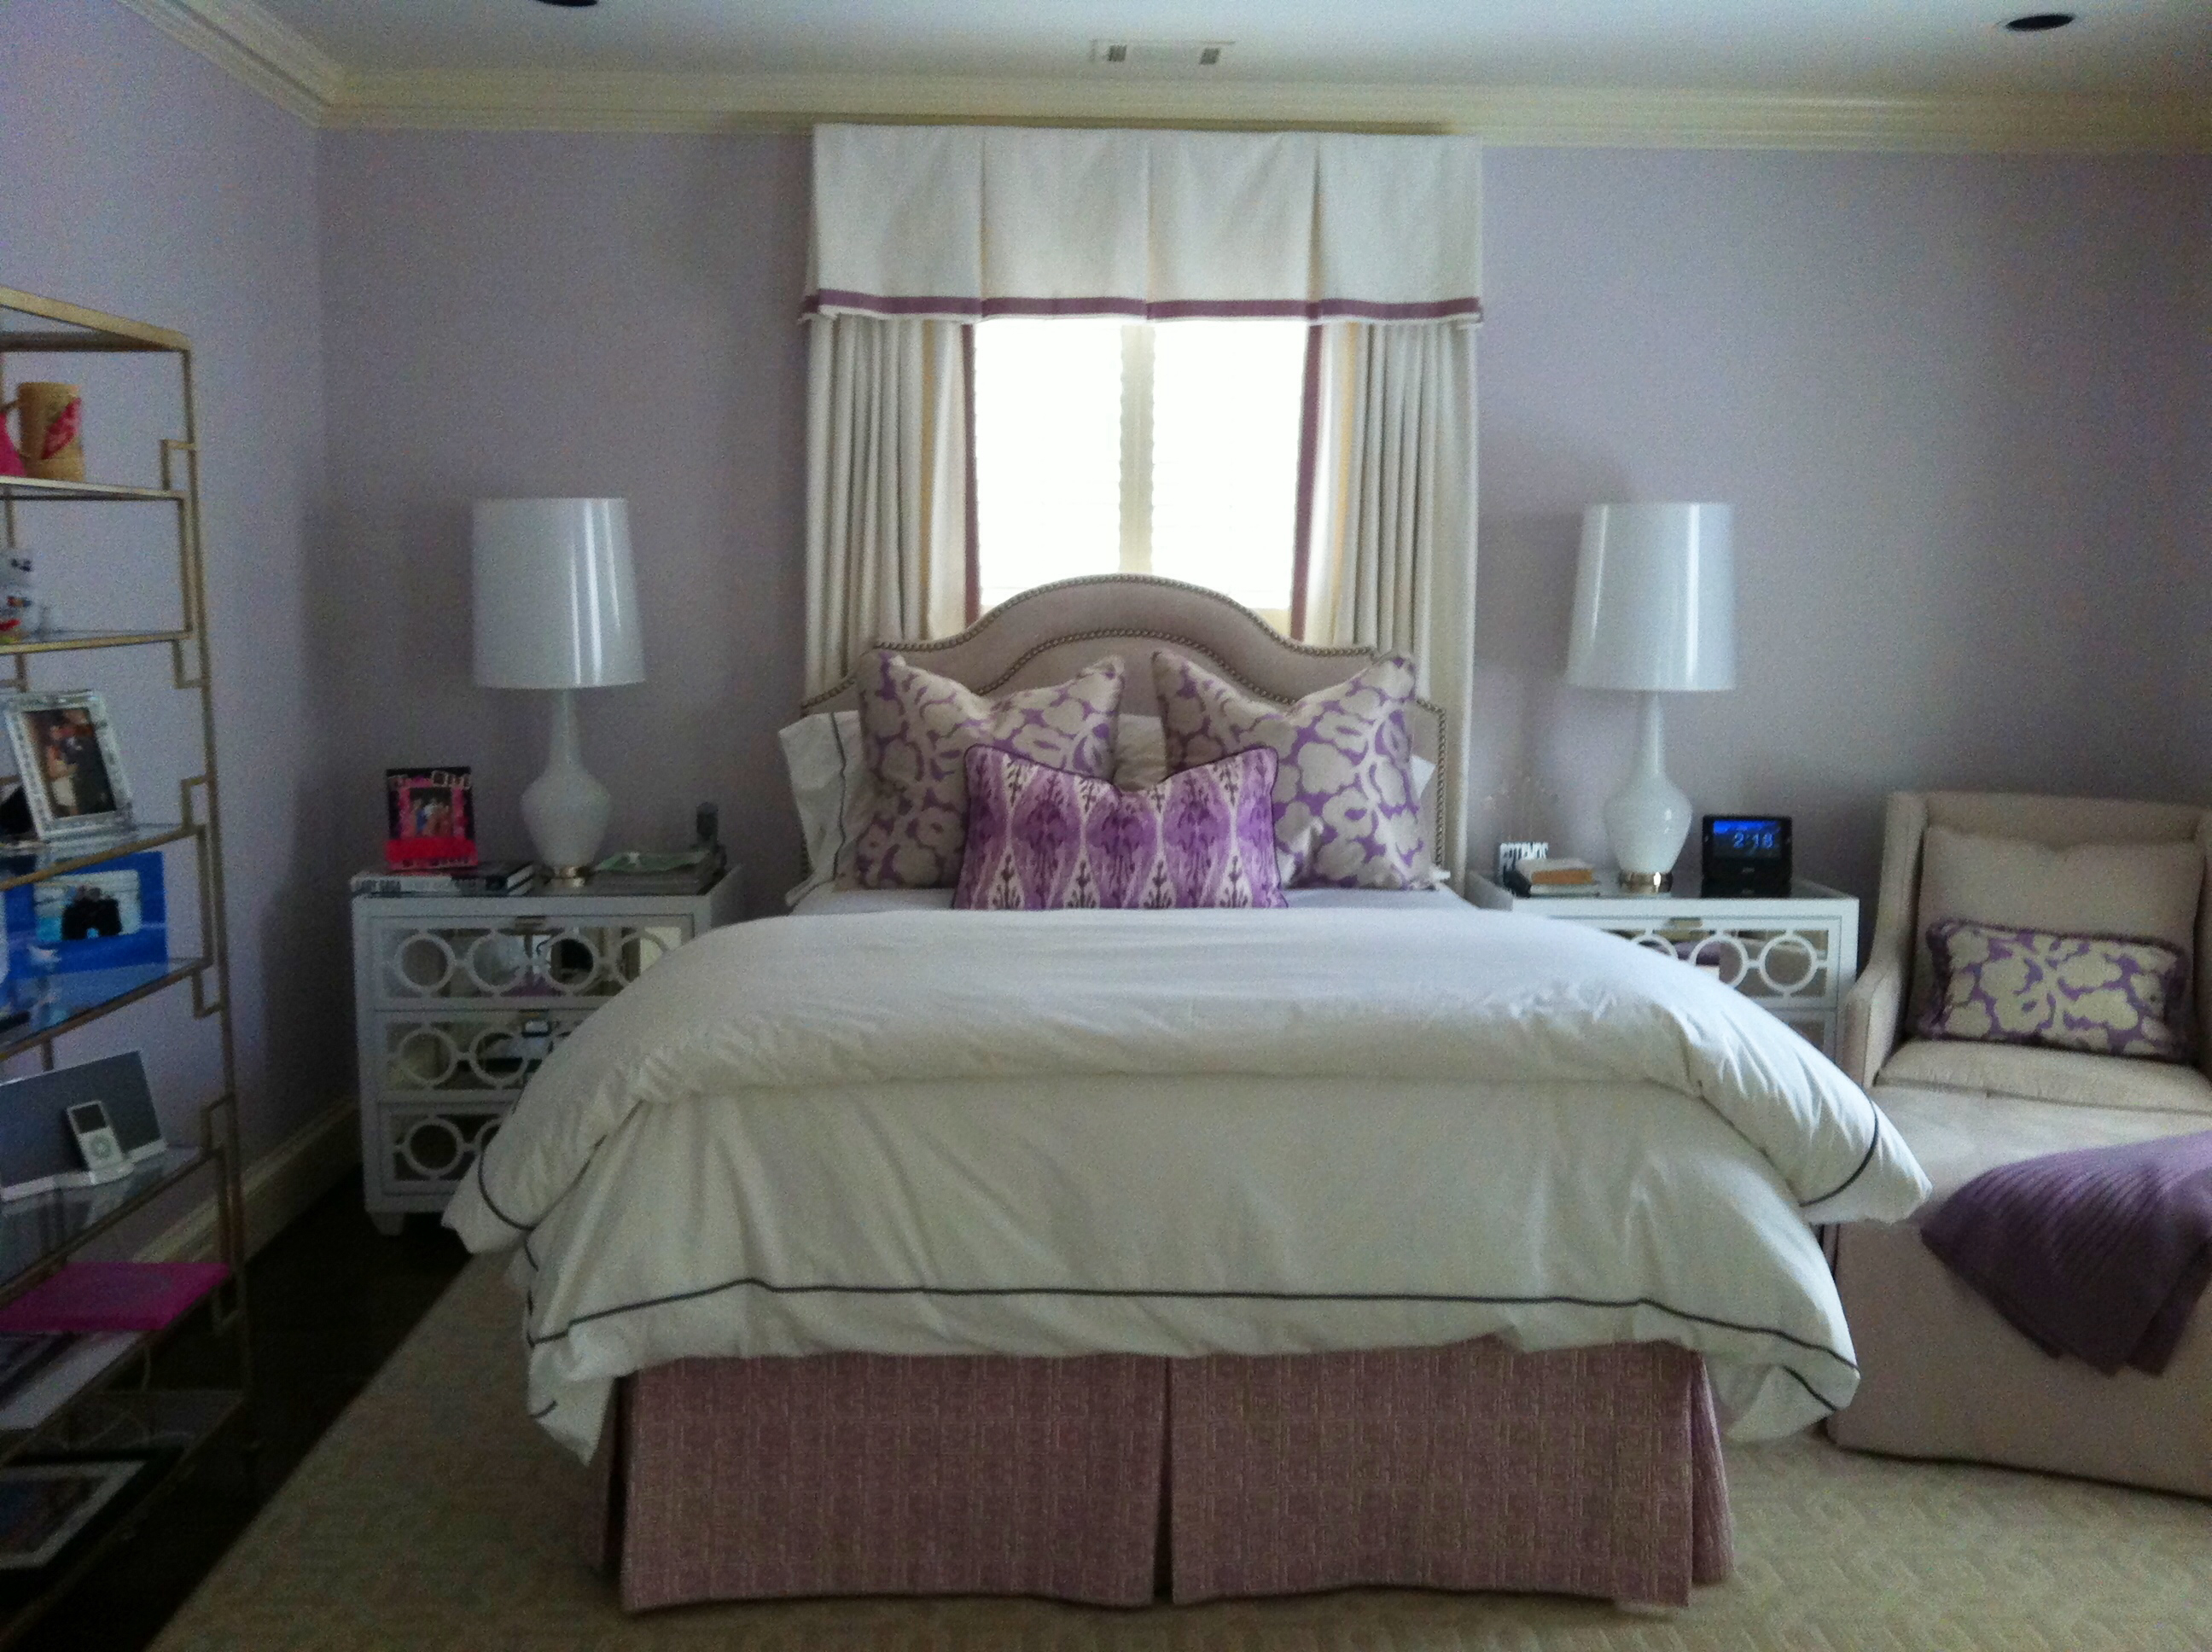 Chic Cowtan And Tout Curtain In White Matched With Lavender Wall Plus Nightstand And Bed For Bedroom Decor Ideas